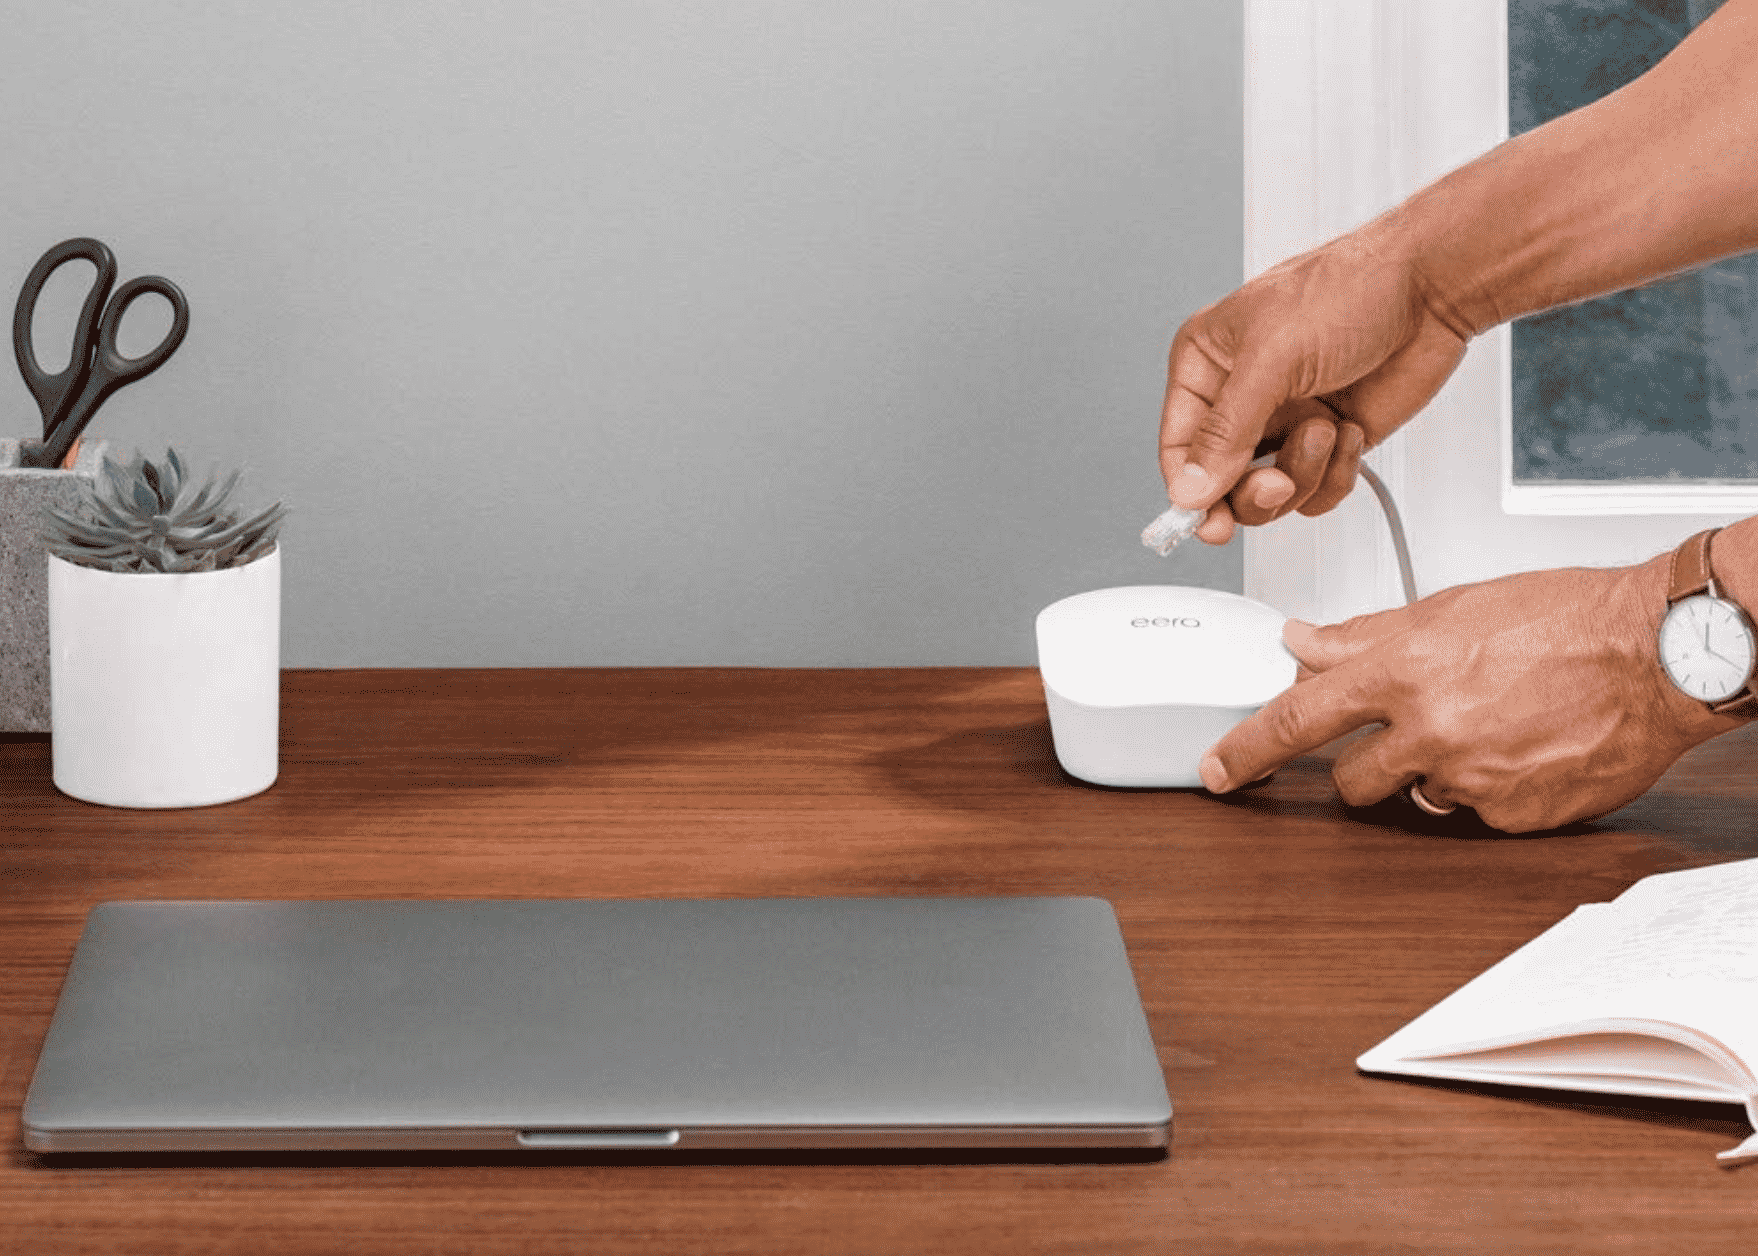 Your Home Wi-Fi Can Get Better With The Eero Mesh System, Now $50 Off